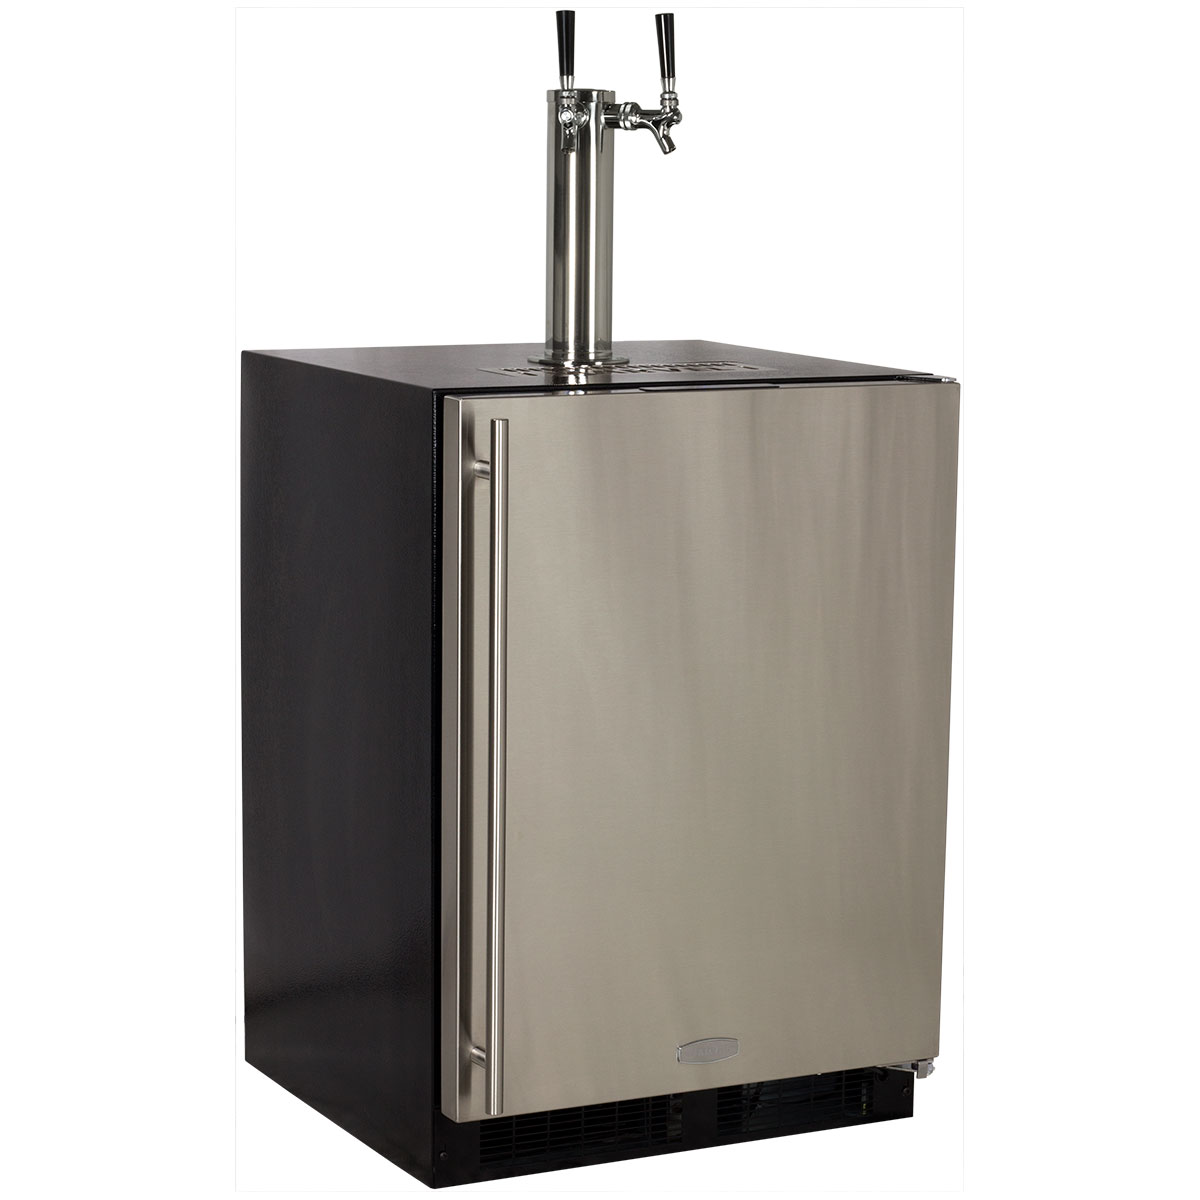 Marvel Built-In Indoor Twin Tap Beer Dispenser- Solid Panel Overlay Ready Door Integrated Left Hinge